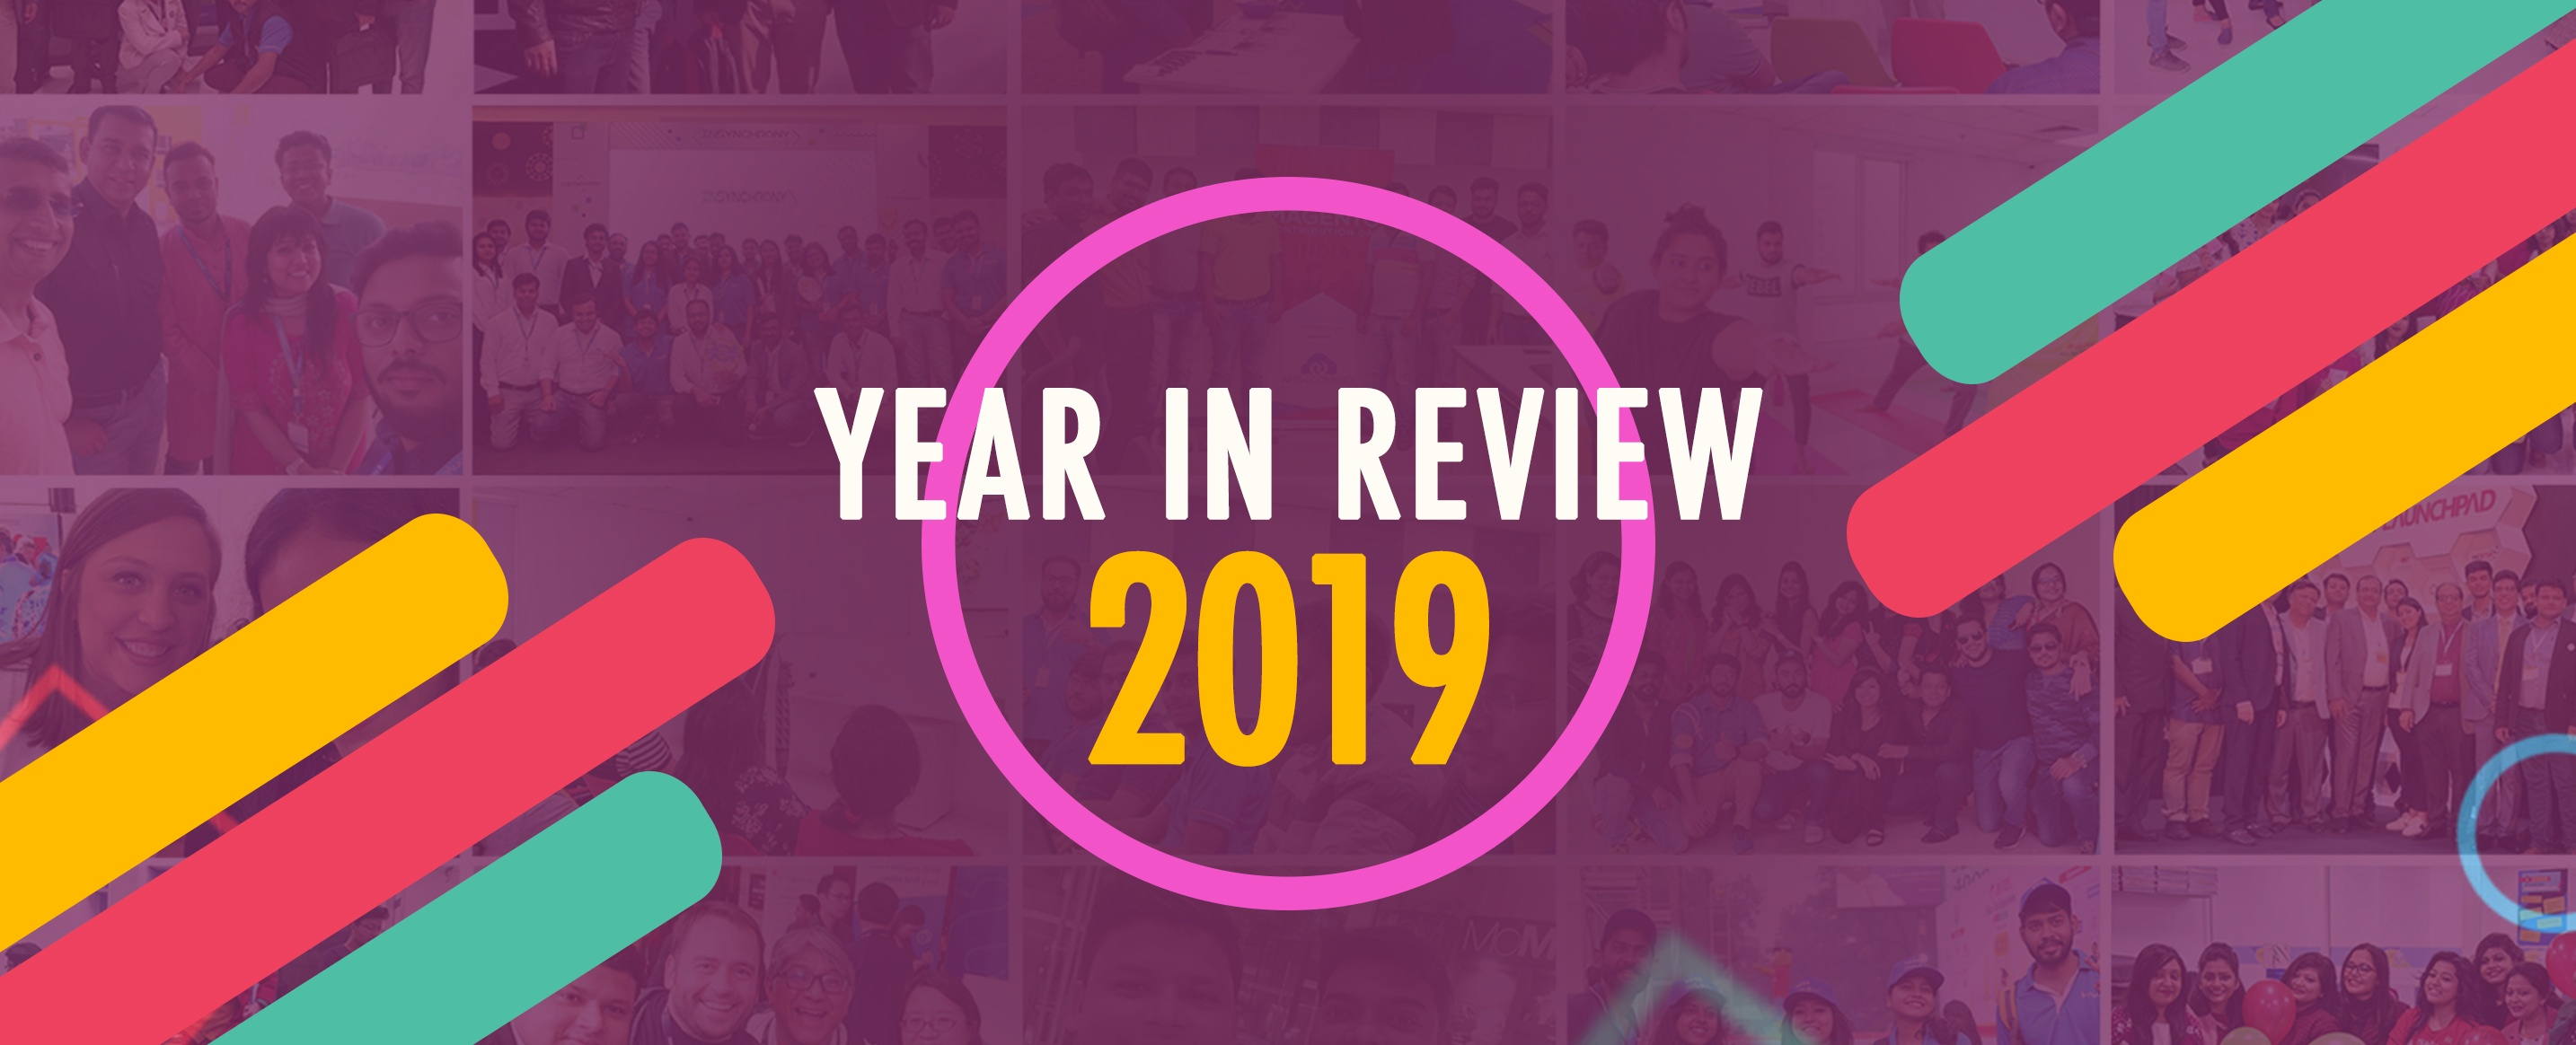 InSync Year In Review 2019!